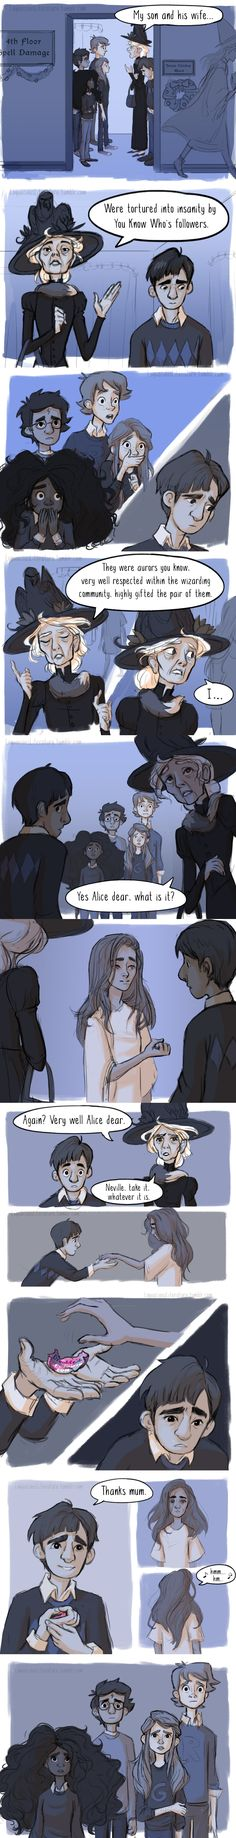 Harry Potter Book 5 Scene---I love this! So beautiful! (Plus Hermione\'s hair is just fantastic)